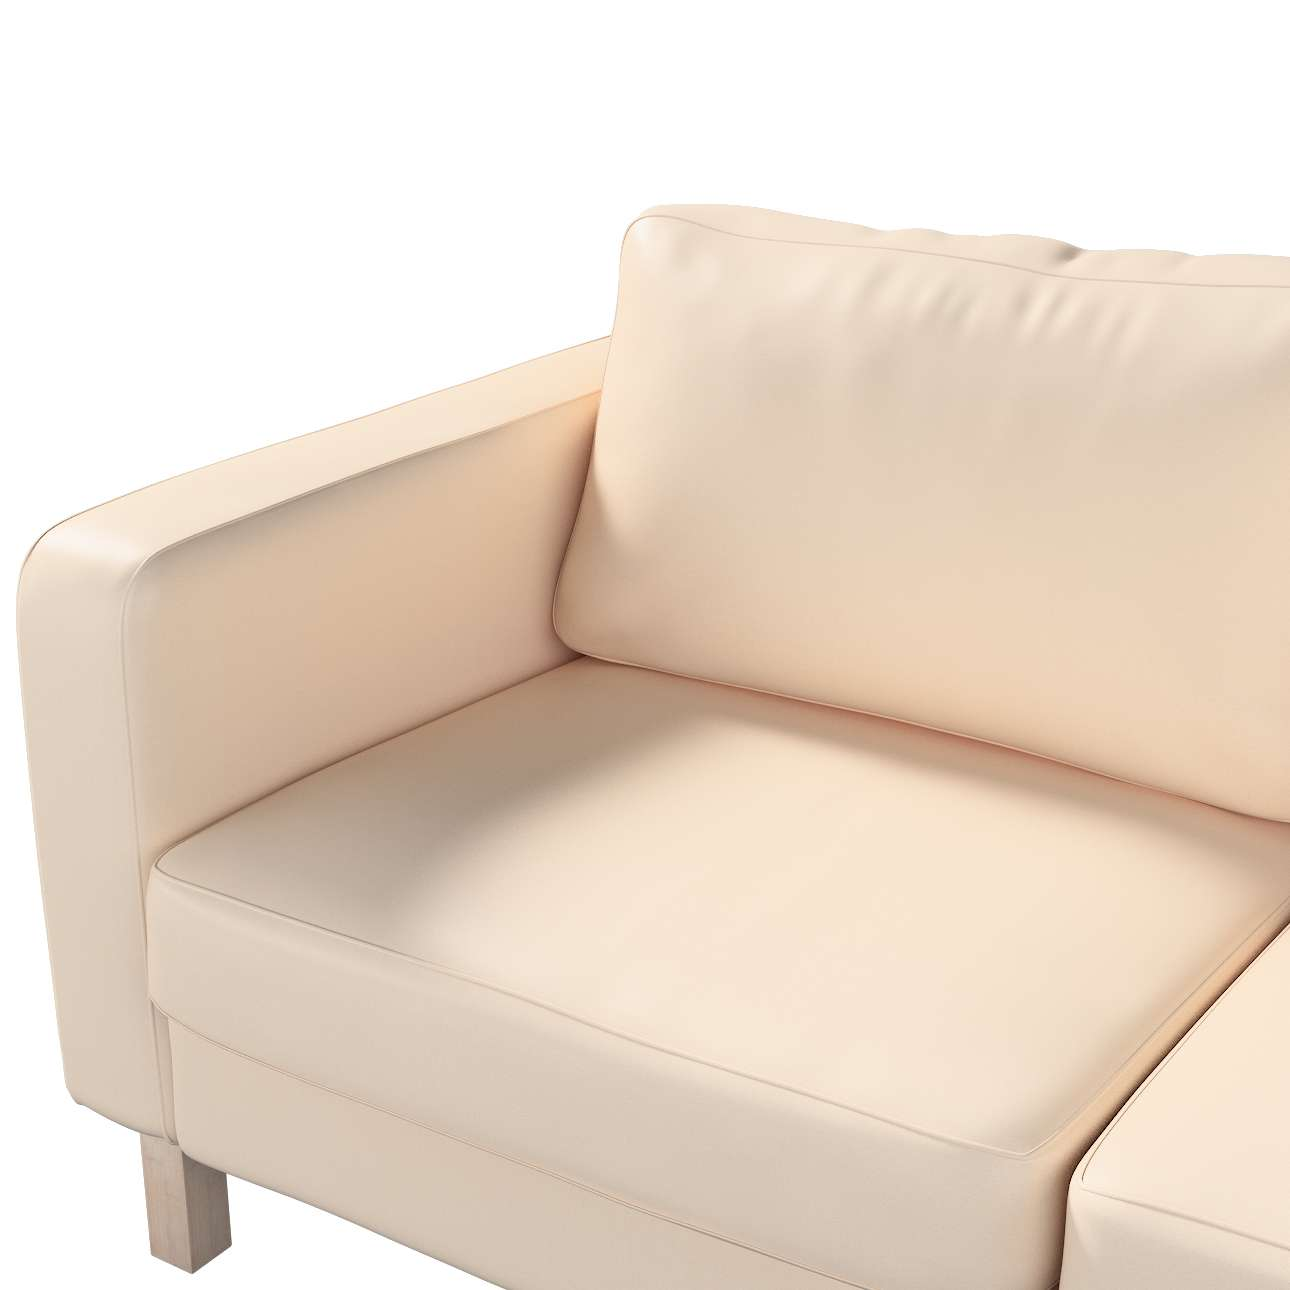 Karlstad 2-seater sofa cover in collection Madrid, fabric: 160-51